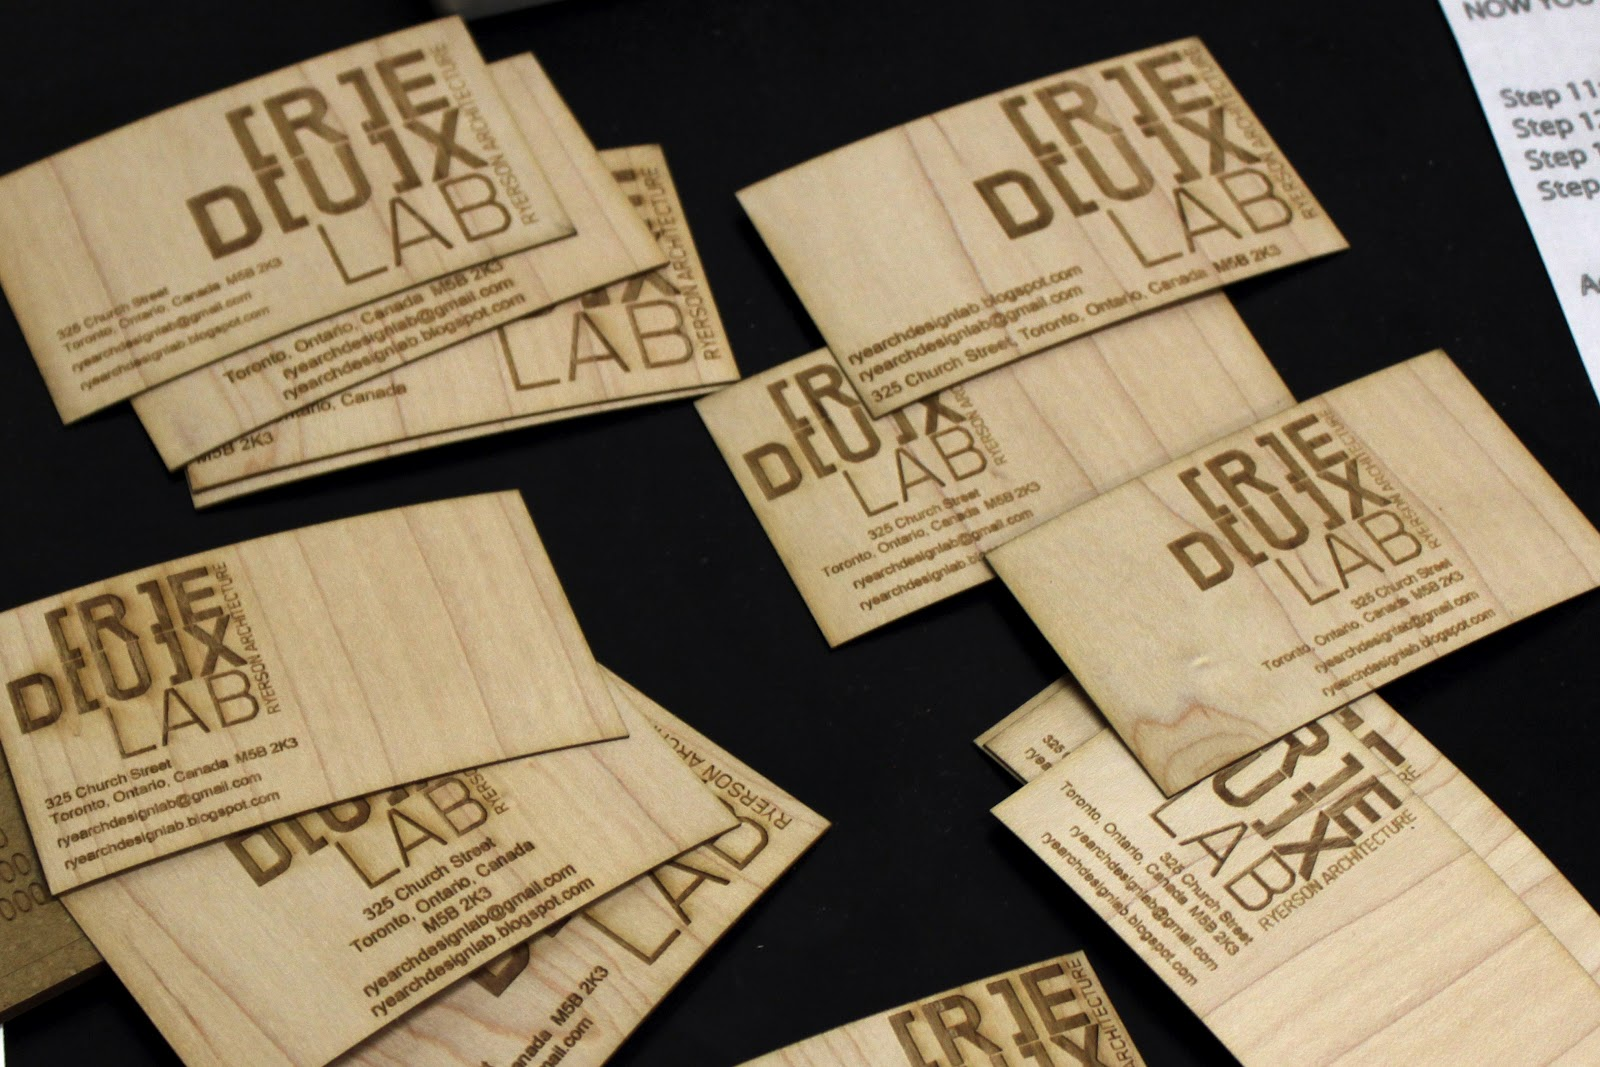 Redux lab ryerson university architectural science design lab to finish off the consistency the redux lab team decided to add some business cards for both the team and woodlot burned on wood veneer for lucky colourmoves